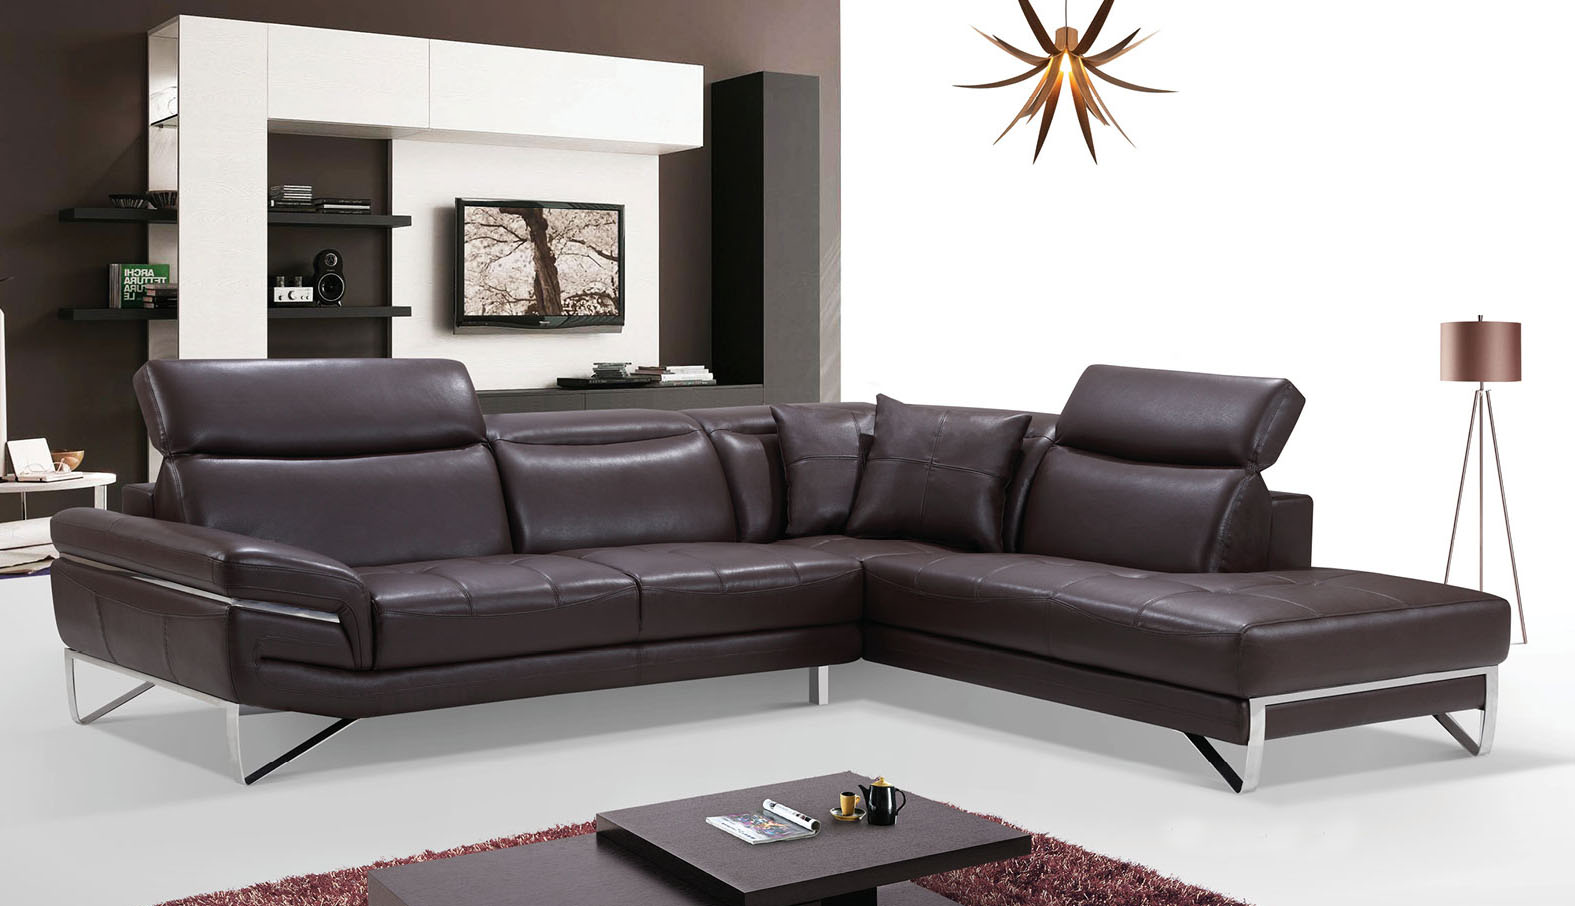 Stylish Curved Sectional Sofa in Leather with Pillows